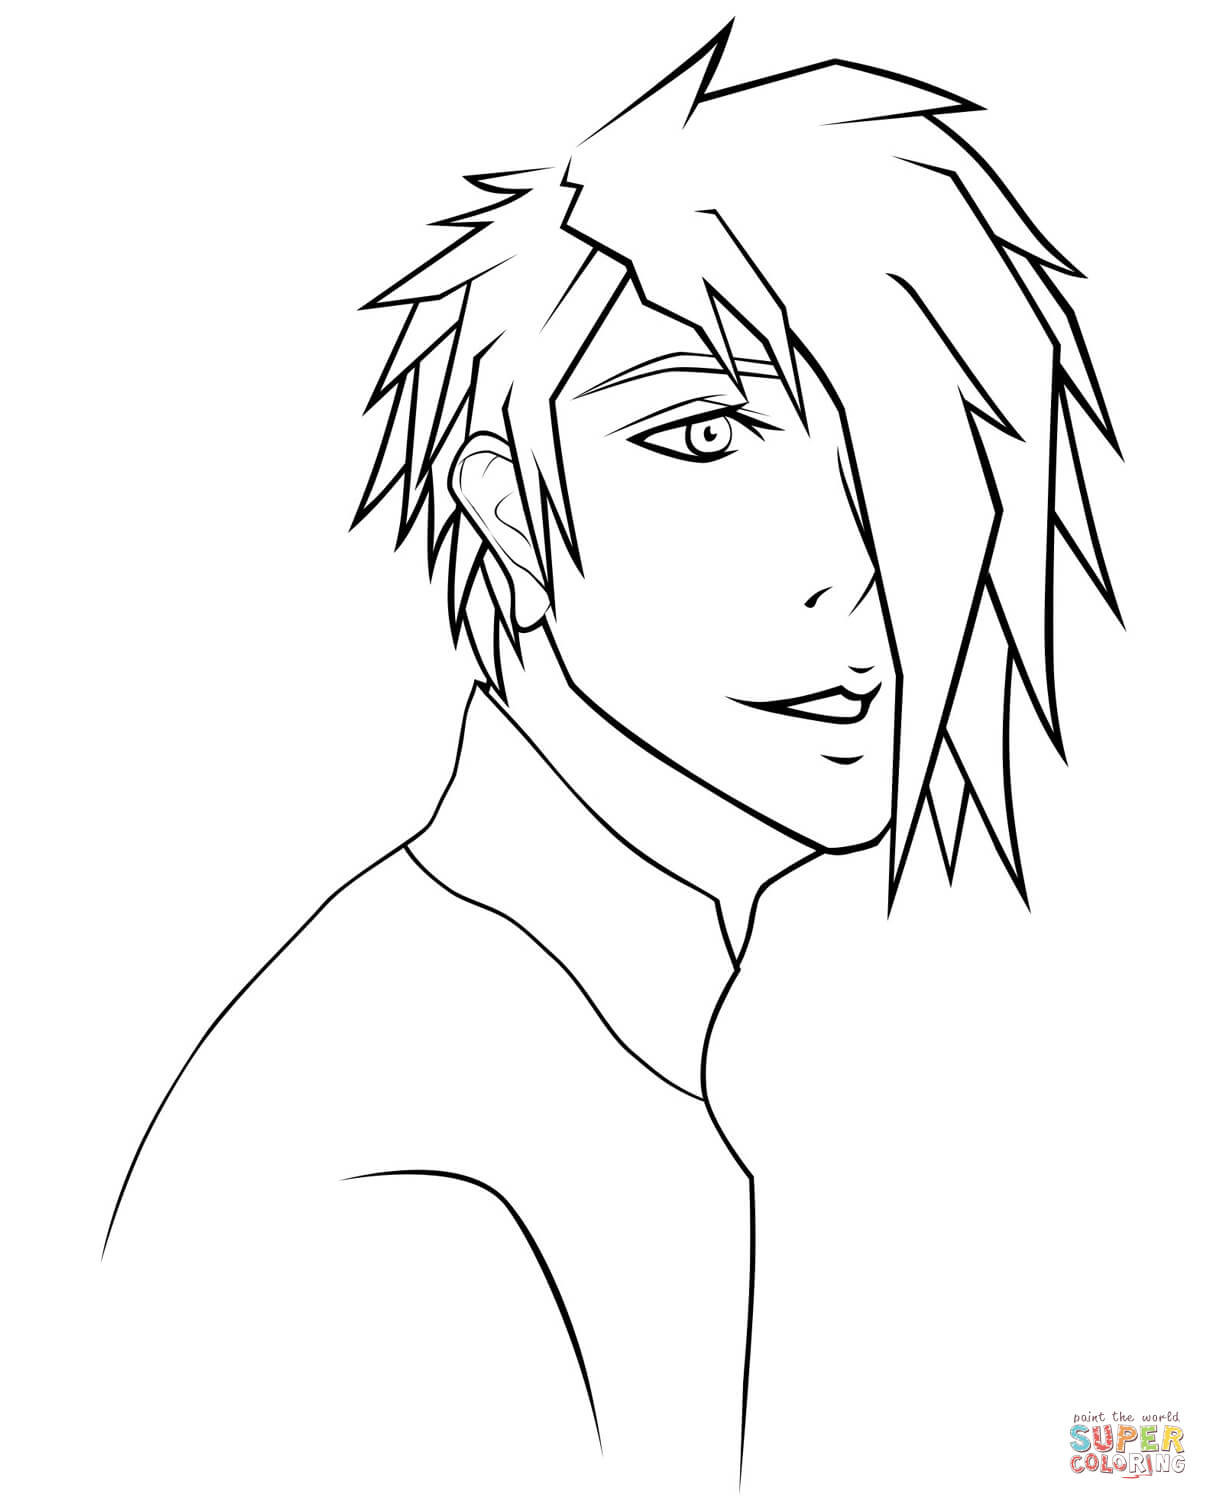 Anime Boys Coloring Pages Easy  Rj Anime Boy Portrait by Sugarcoated lipops coloring